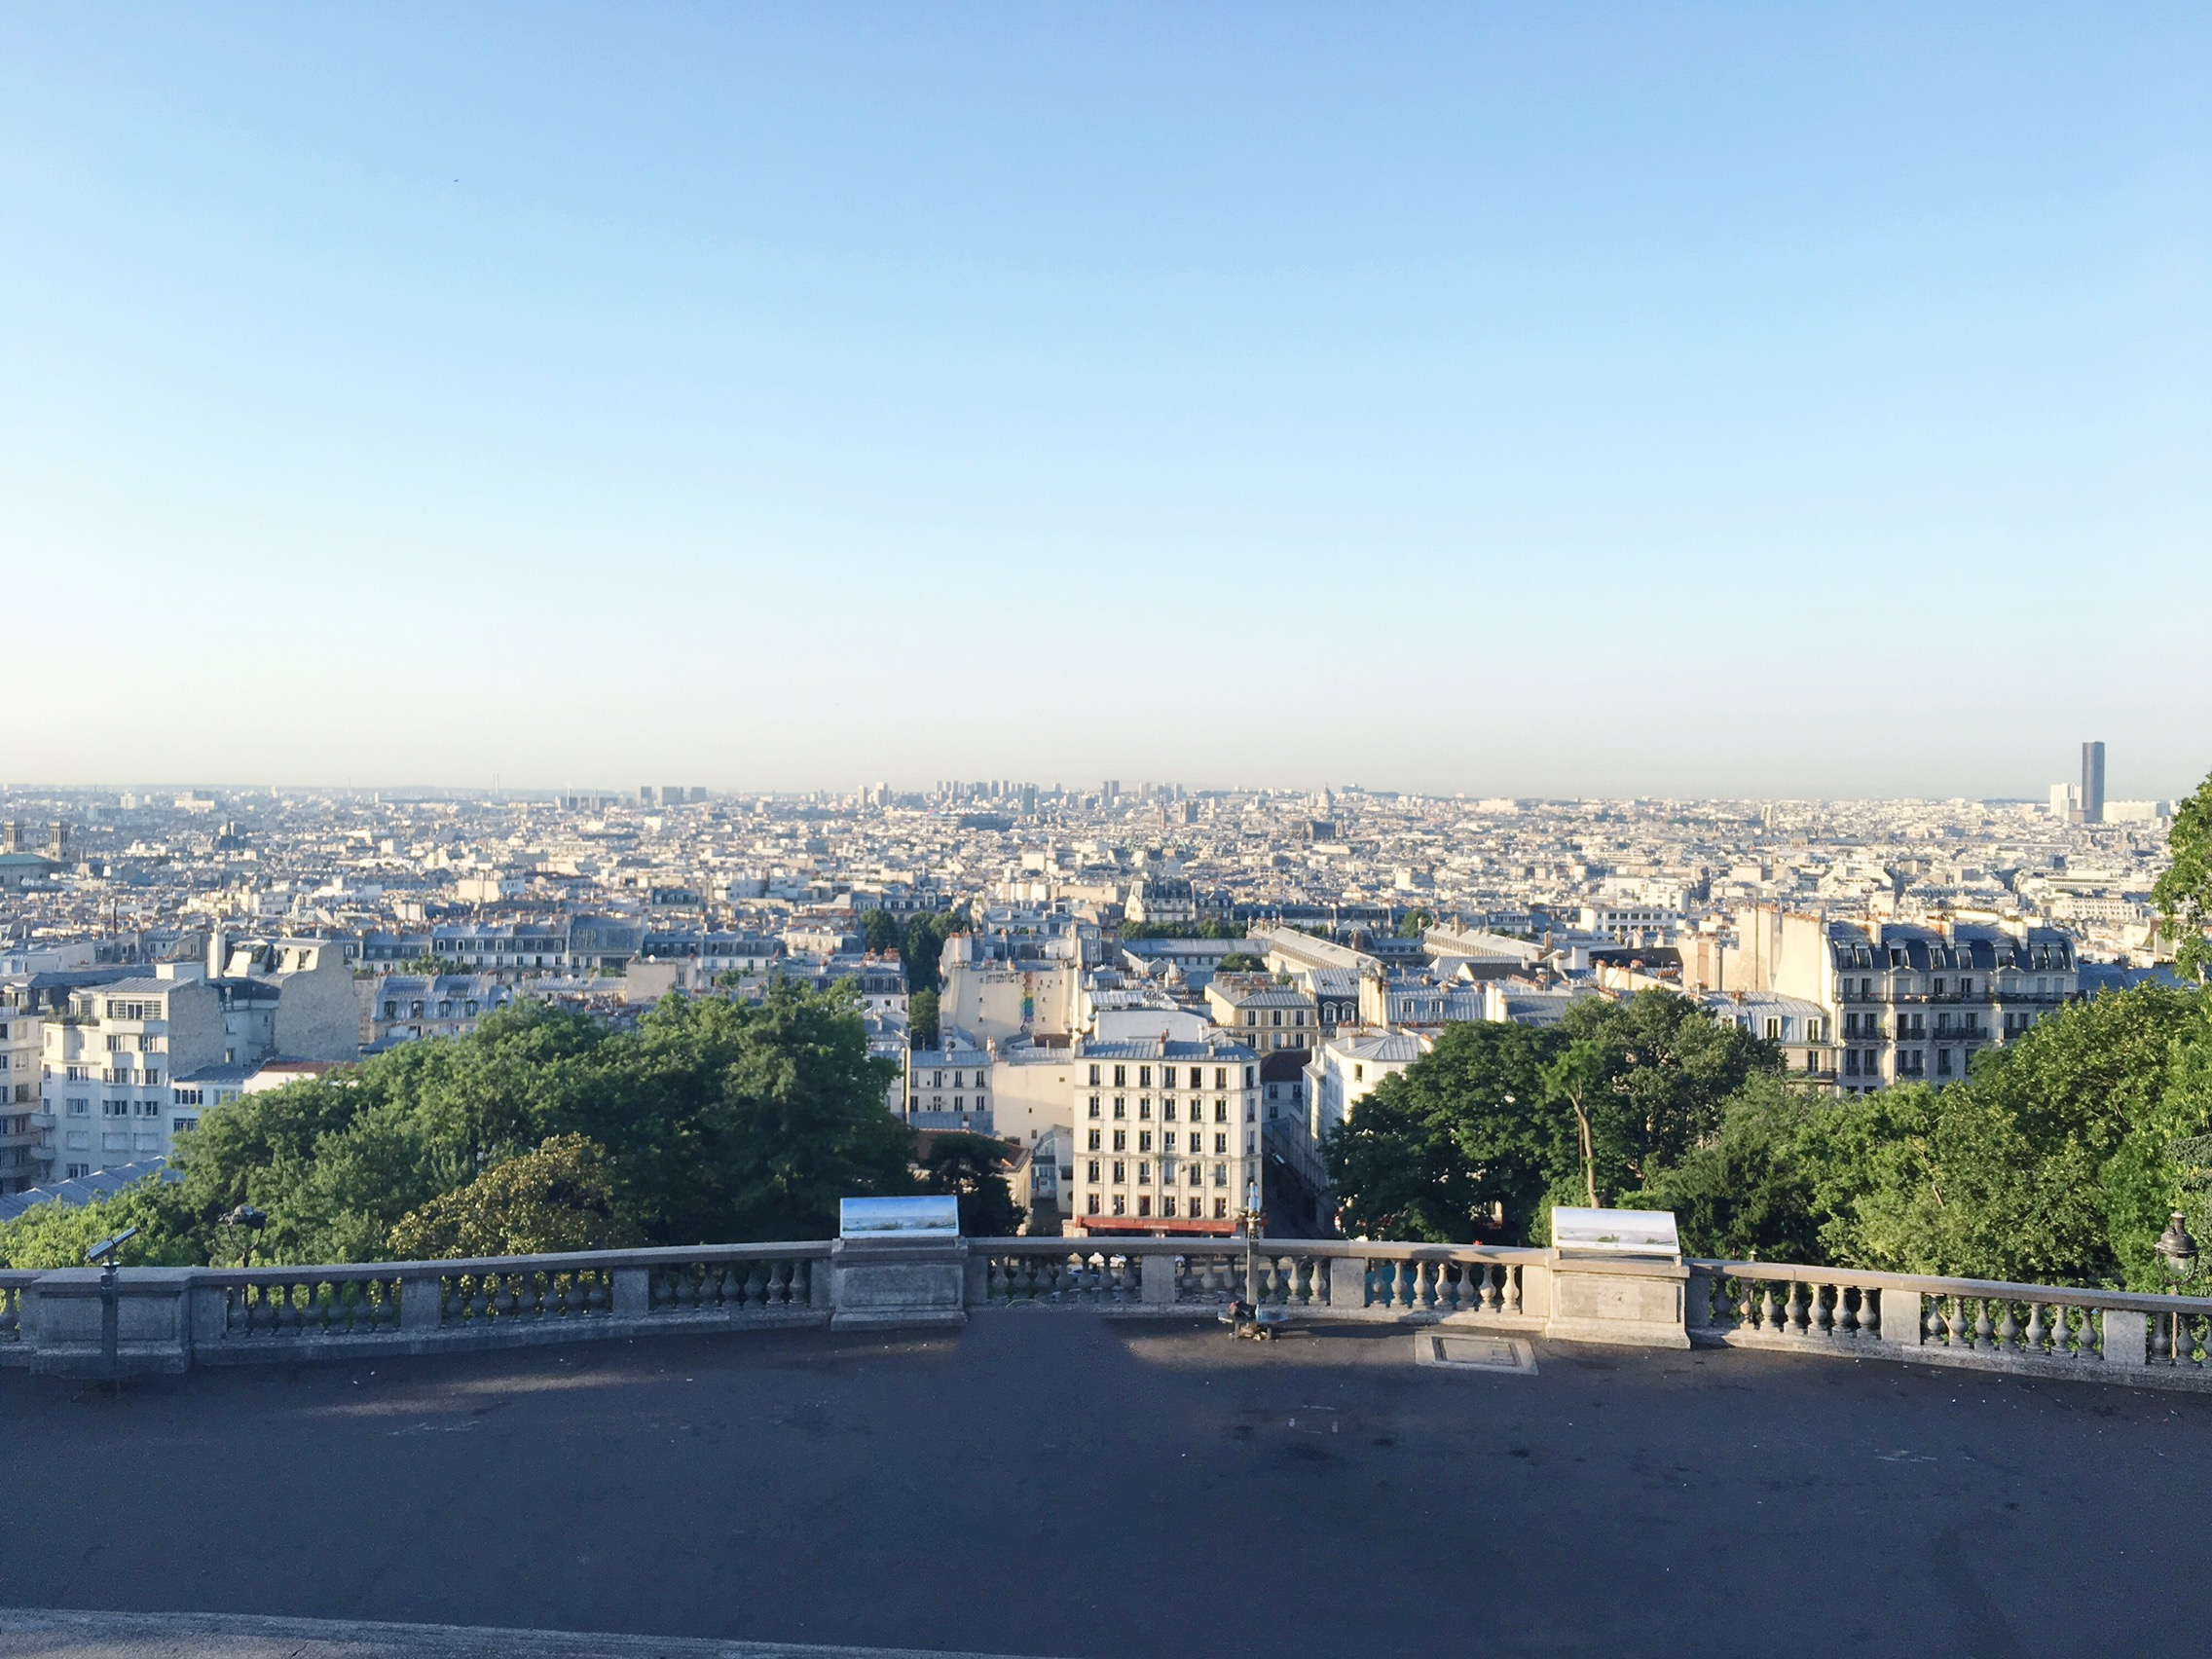 The view from Sacre Coeur on meethaha.com